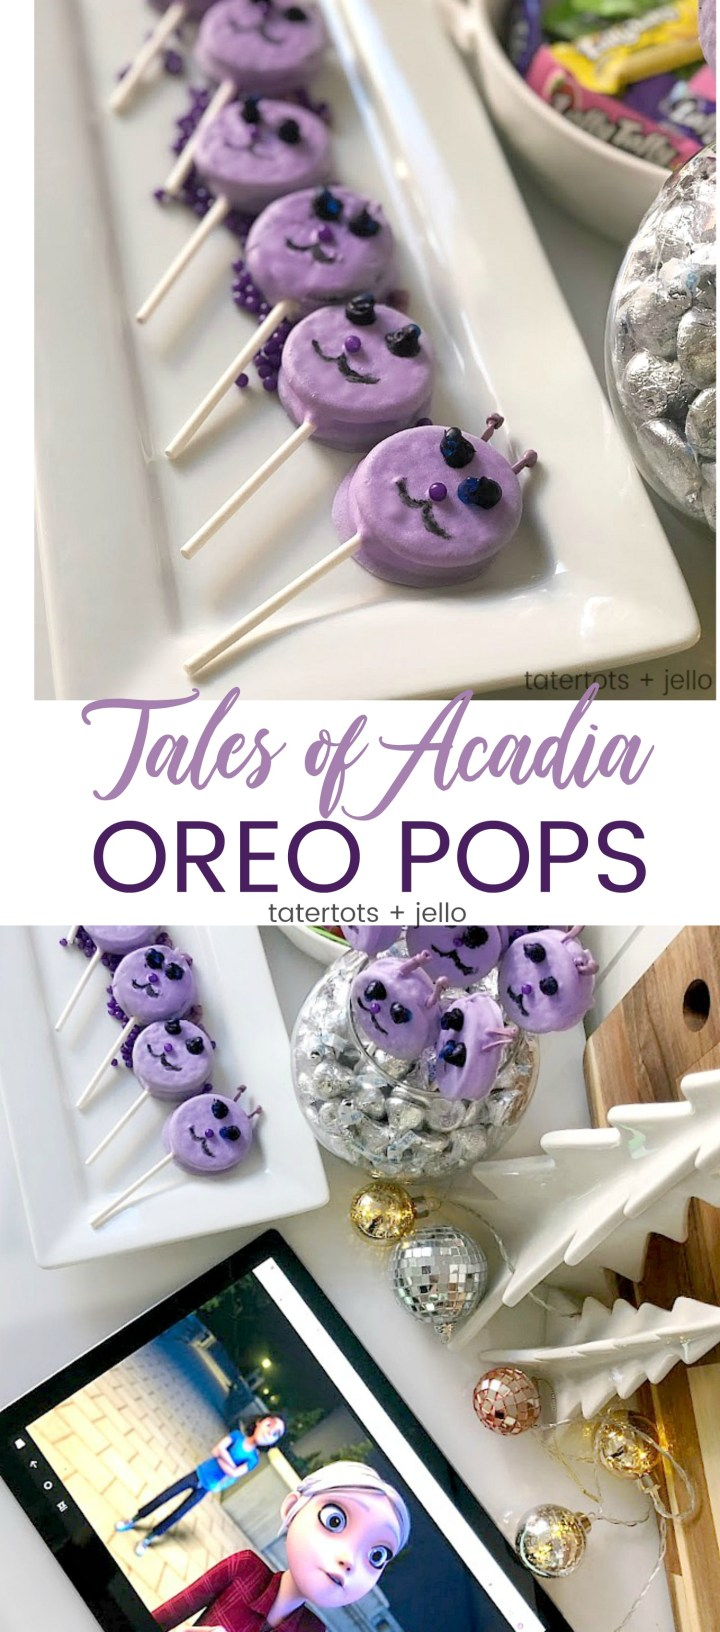 tales of acadia oreo pops tutorial